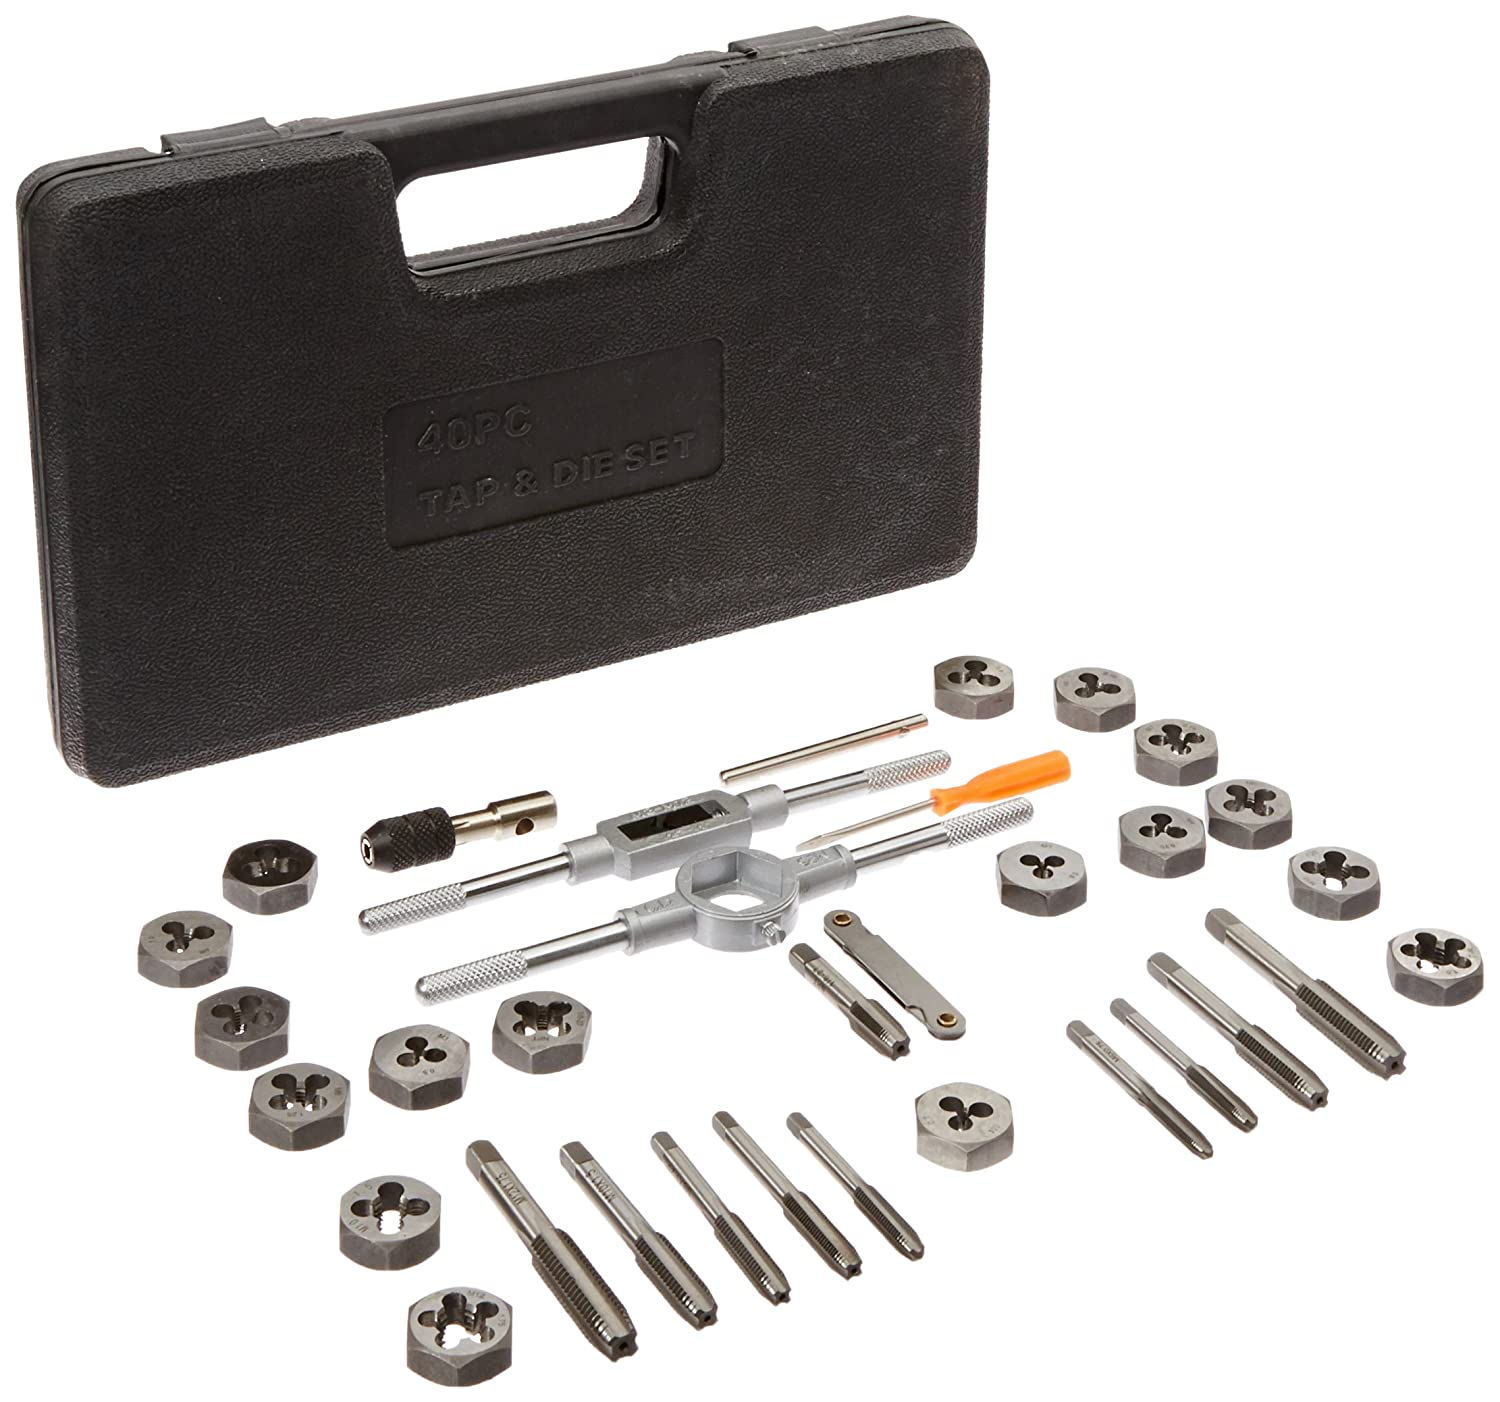 Drill America DWT40PC MM HEX 3 12mm Carbon Steel Tap and Die Set with Hex Die